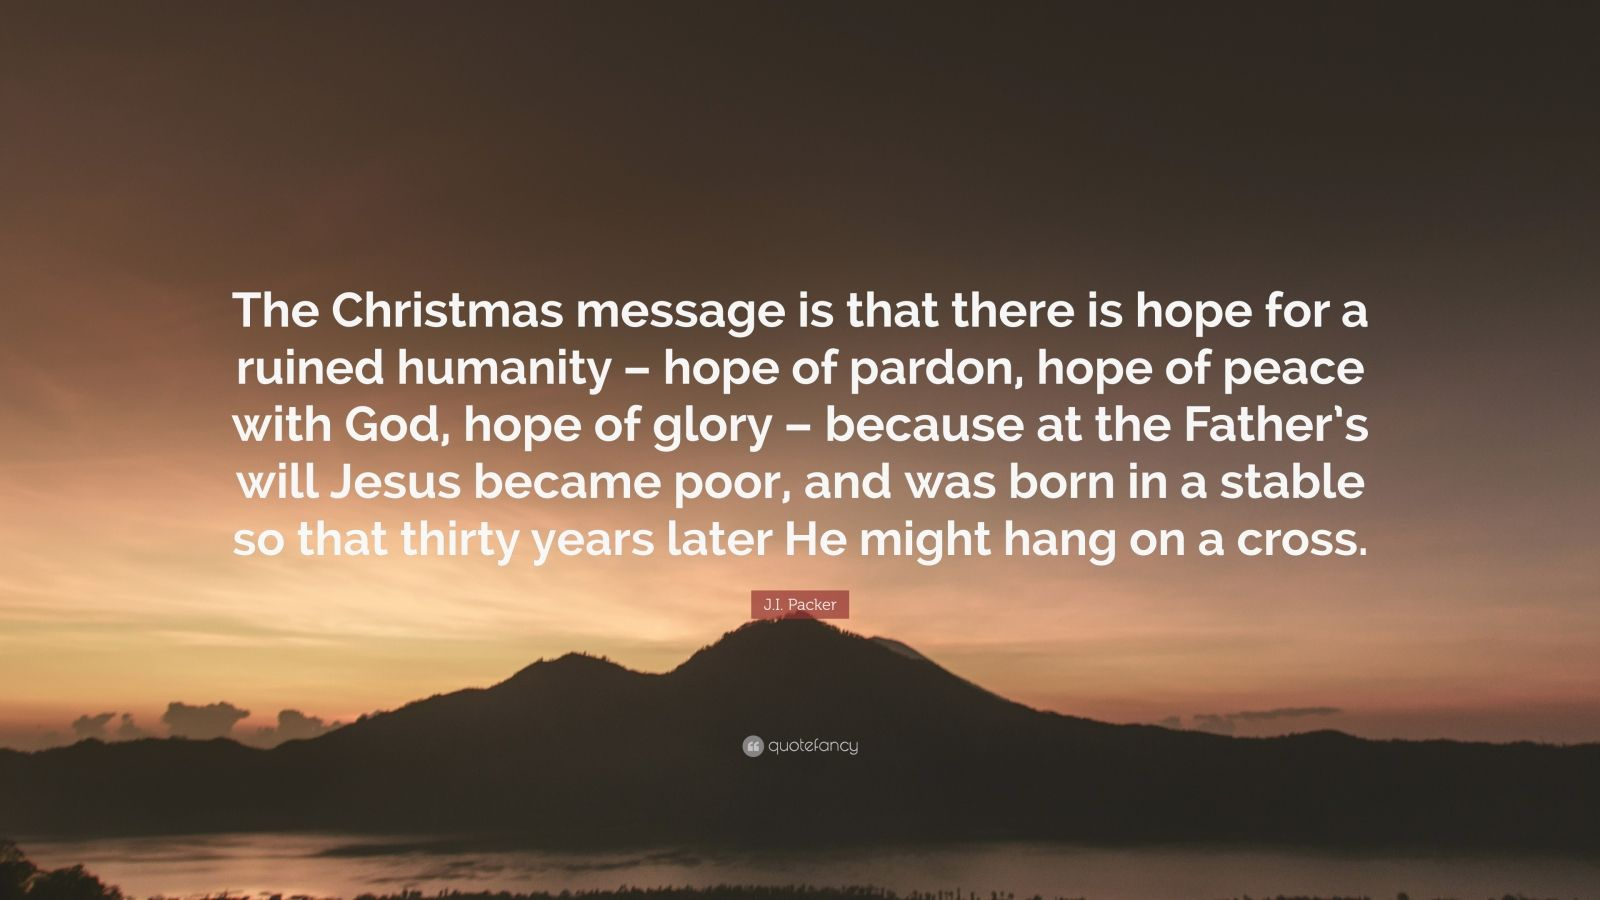 """J.I. Packer Quote: """"The Christmas message is that there is hope for a ruined humanity – hope of pardon, hope of peace with God, hope of glory – because at the Father's will Jesus became poor, and was born in a stable so that thirty years later He might hang on a cross."""""""